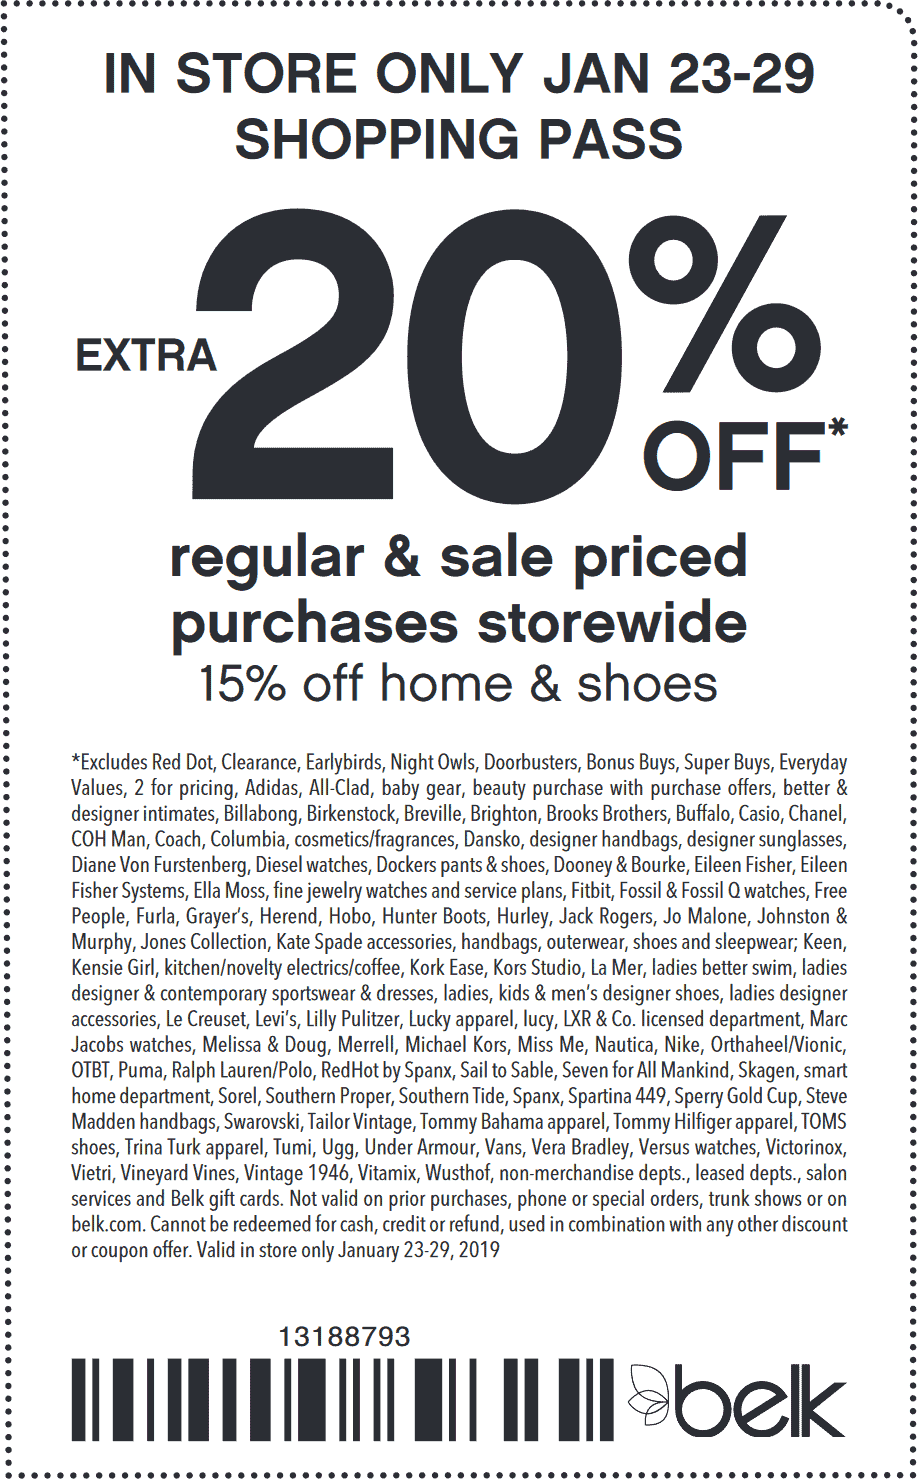 Belk Coupon March 2019 20% off at Belk